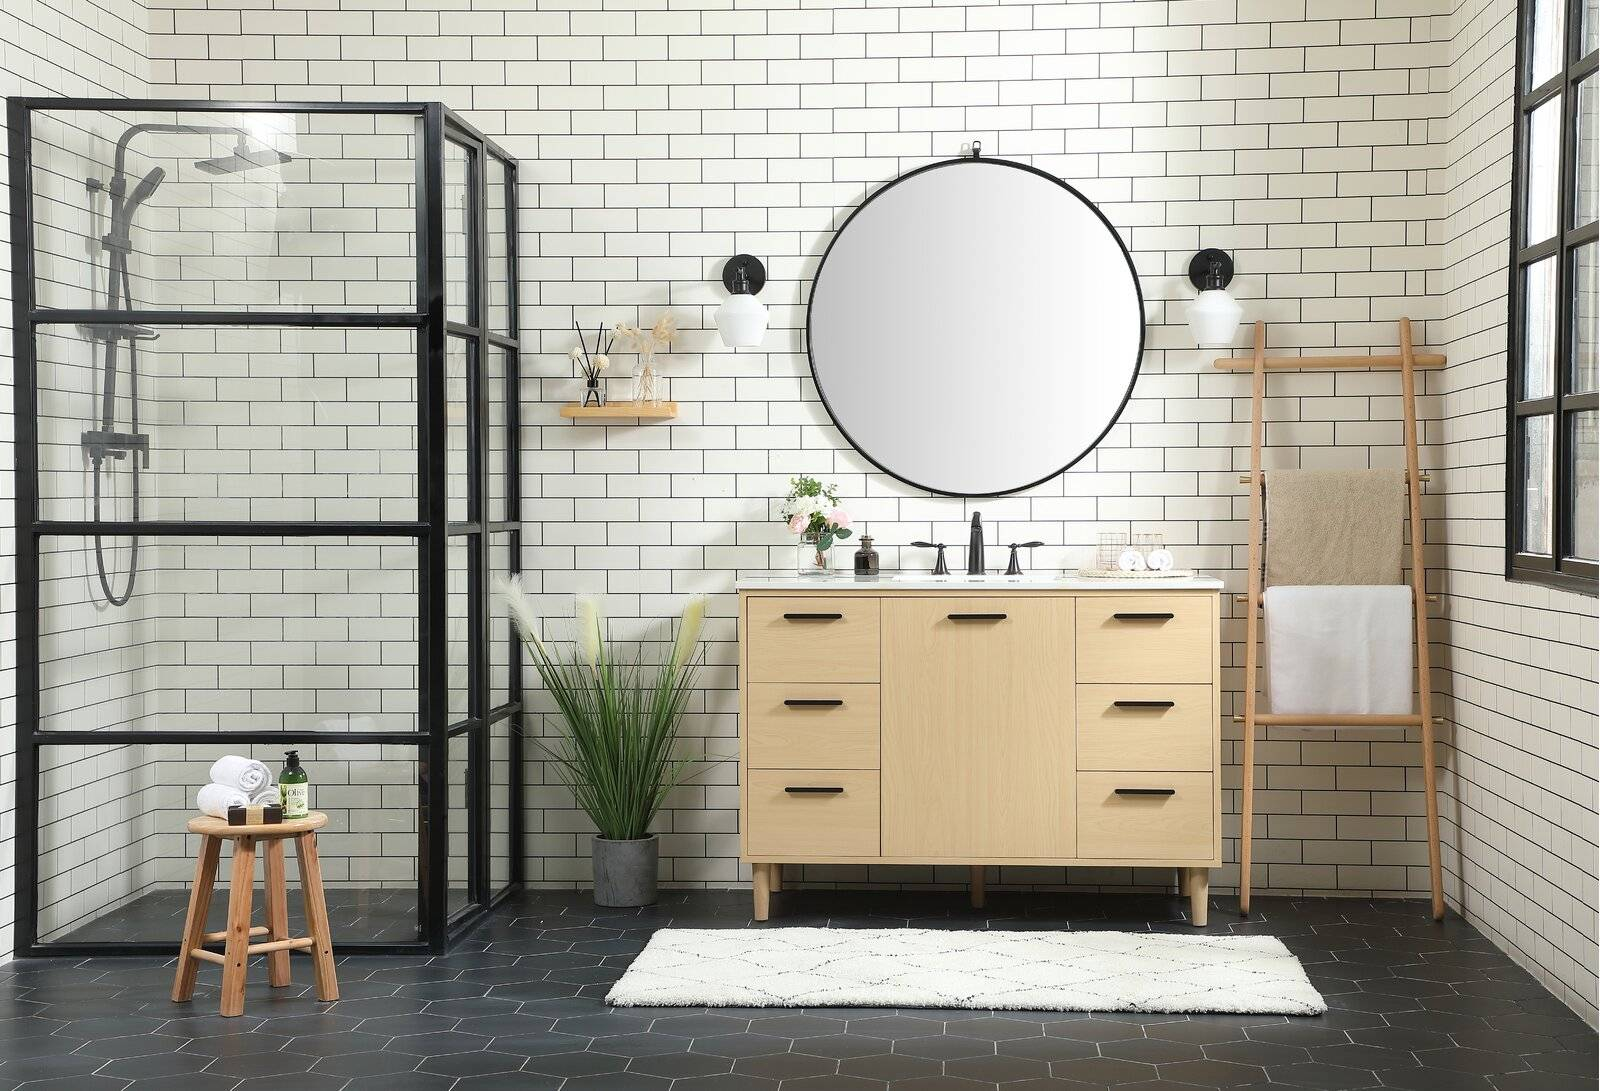 Shower room with round mirror and vanity